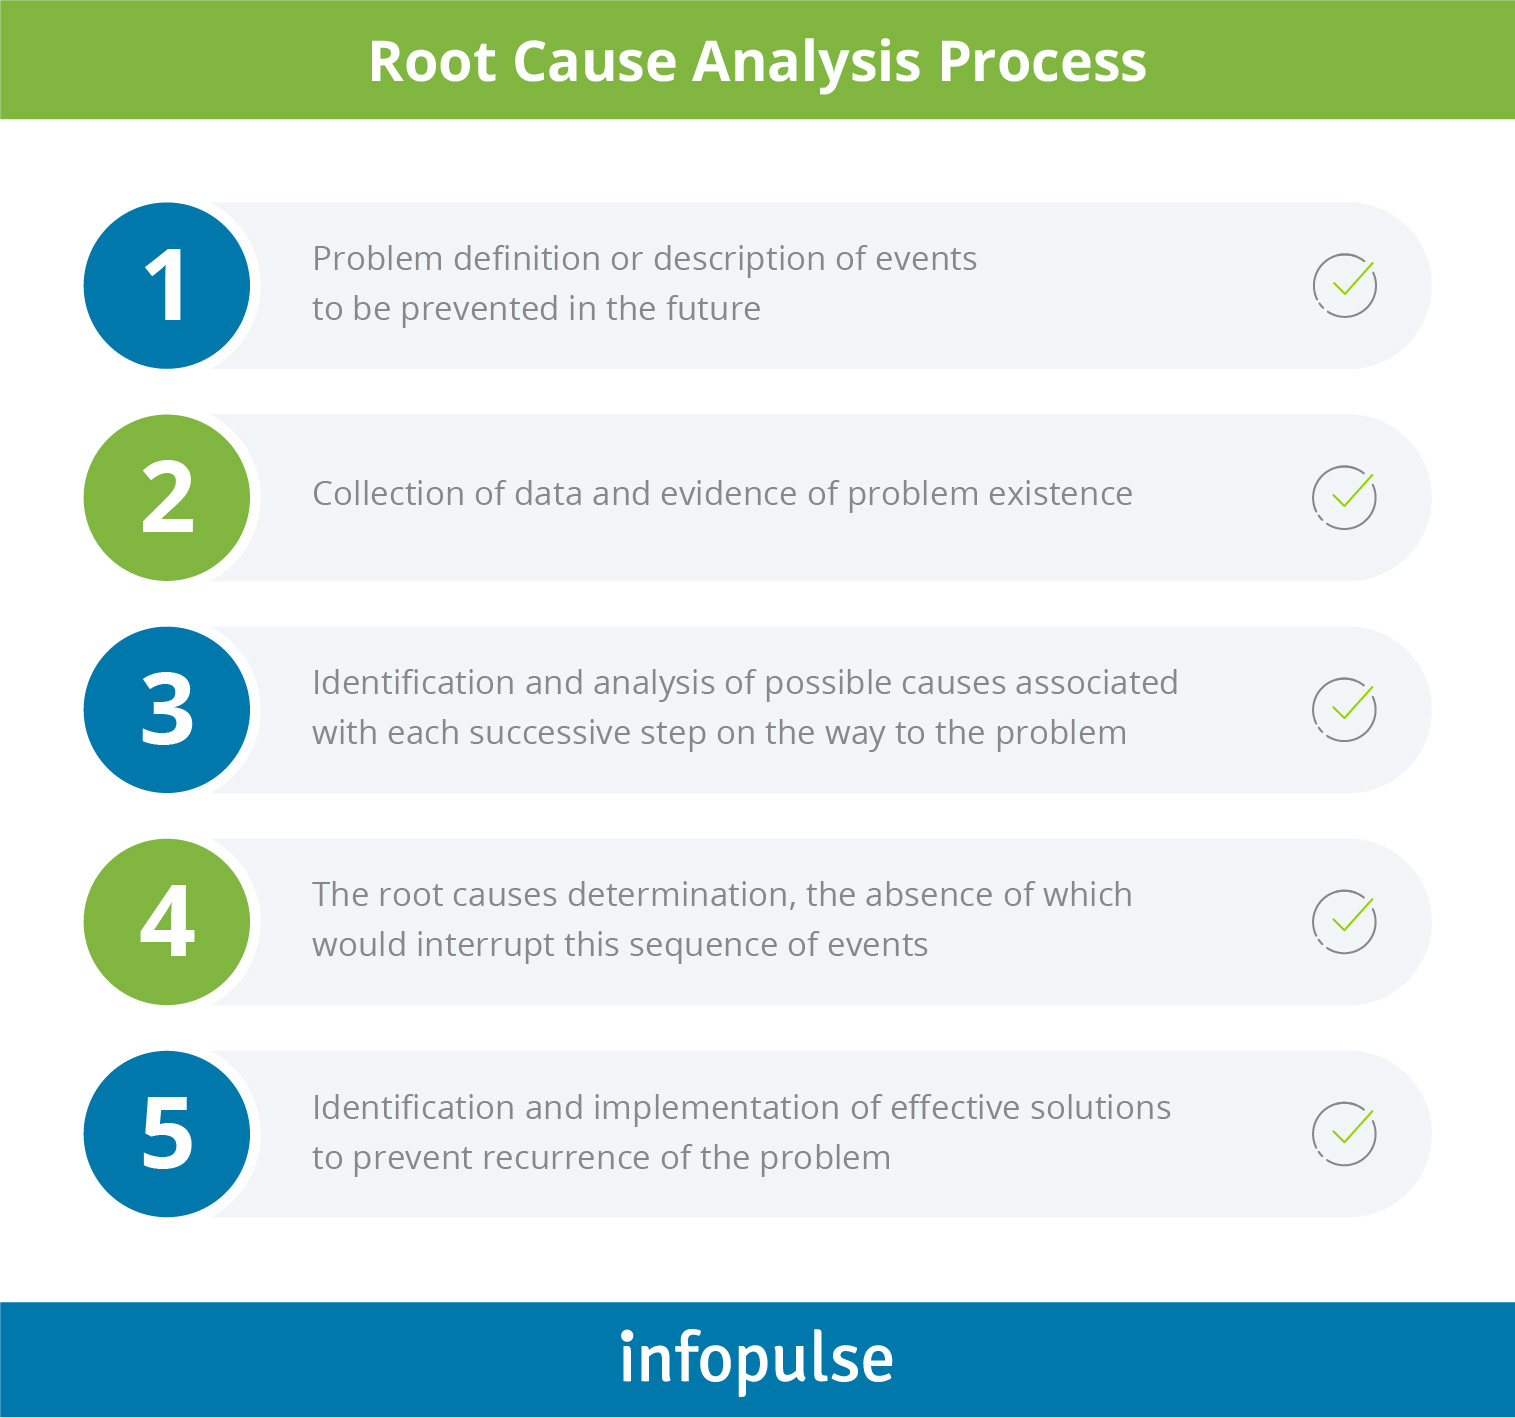 Why Quality Software Is Impossible Without Proper Root Cause Analysis (RCA) - 1 - Infopulse